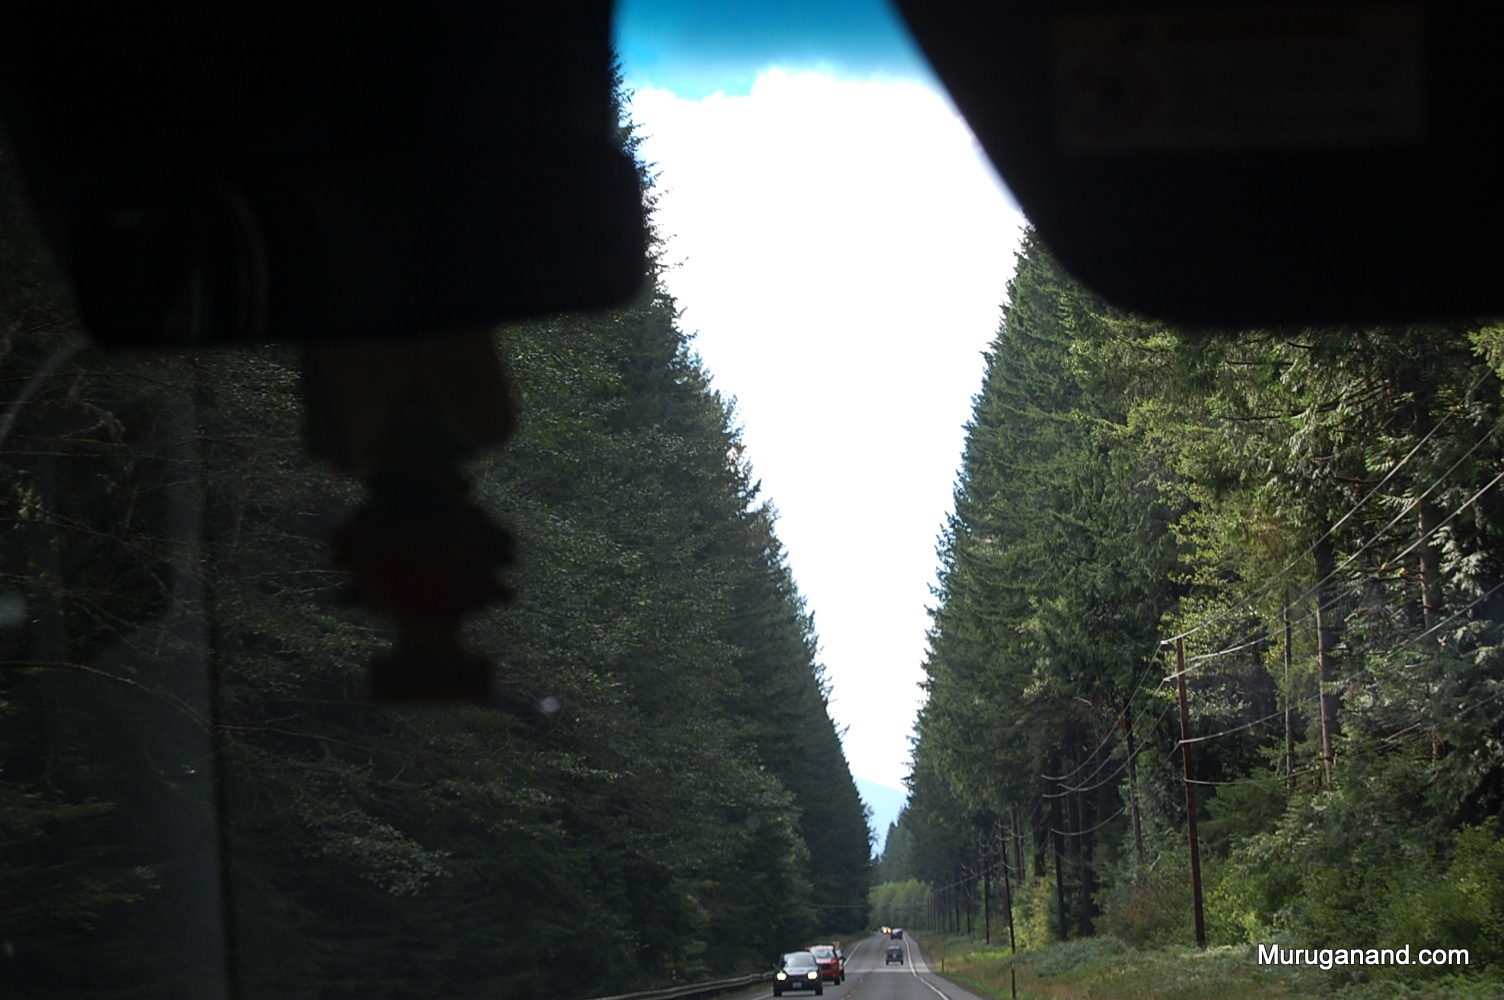 We are returning to Seattle through the scenic highway.